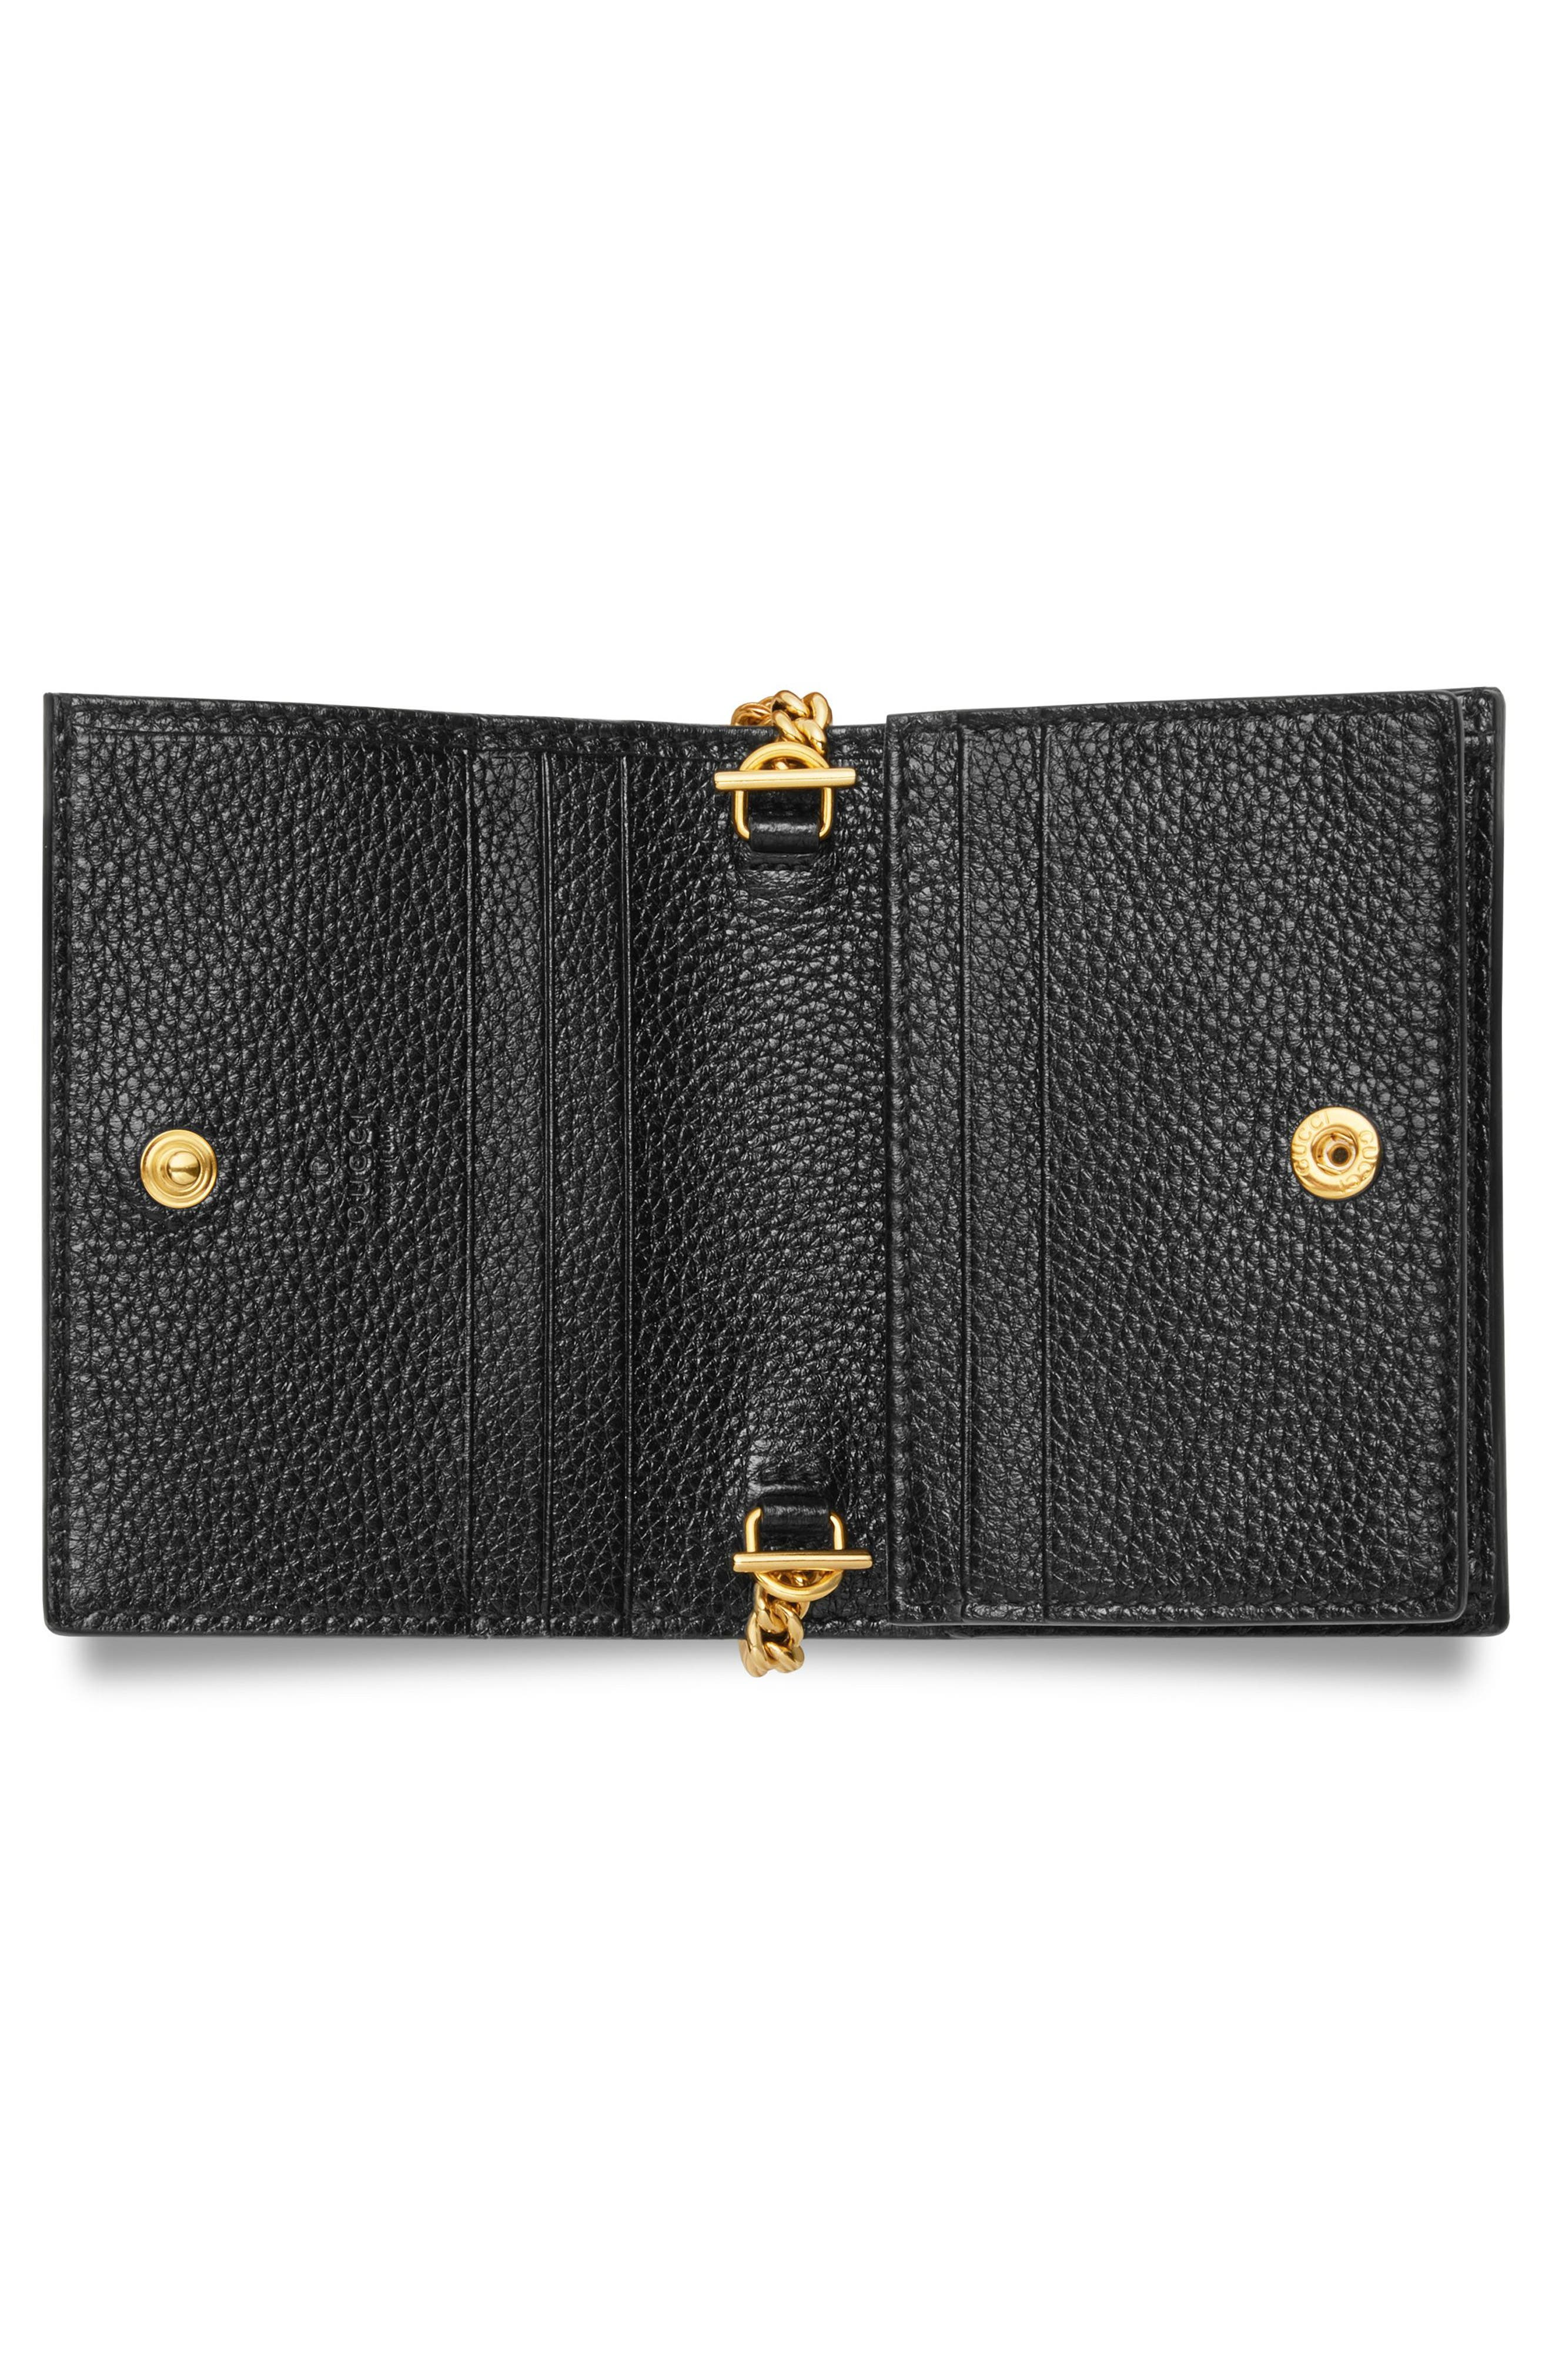 GUCCI, Zumi 655 Leather Wallet on a Chain, Alternate thumbnail 4, color, BLACK